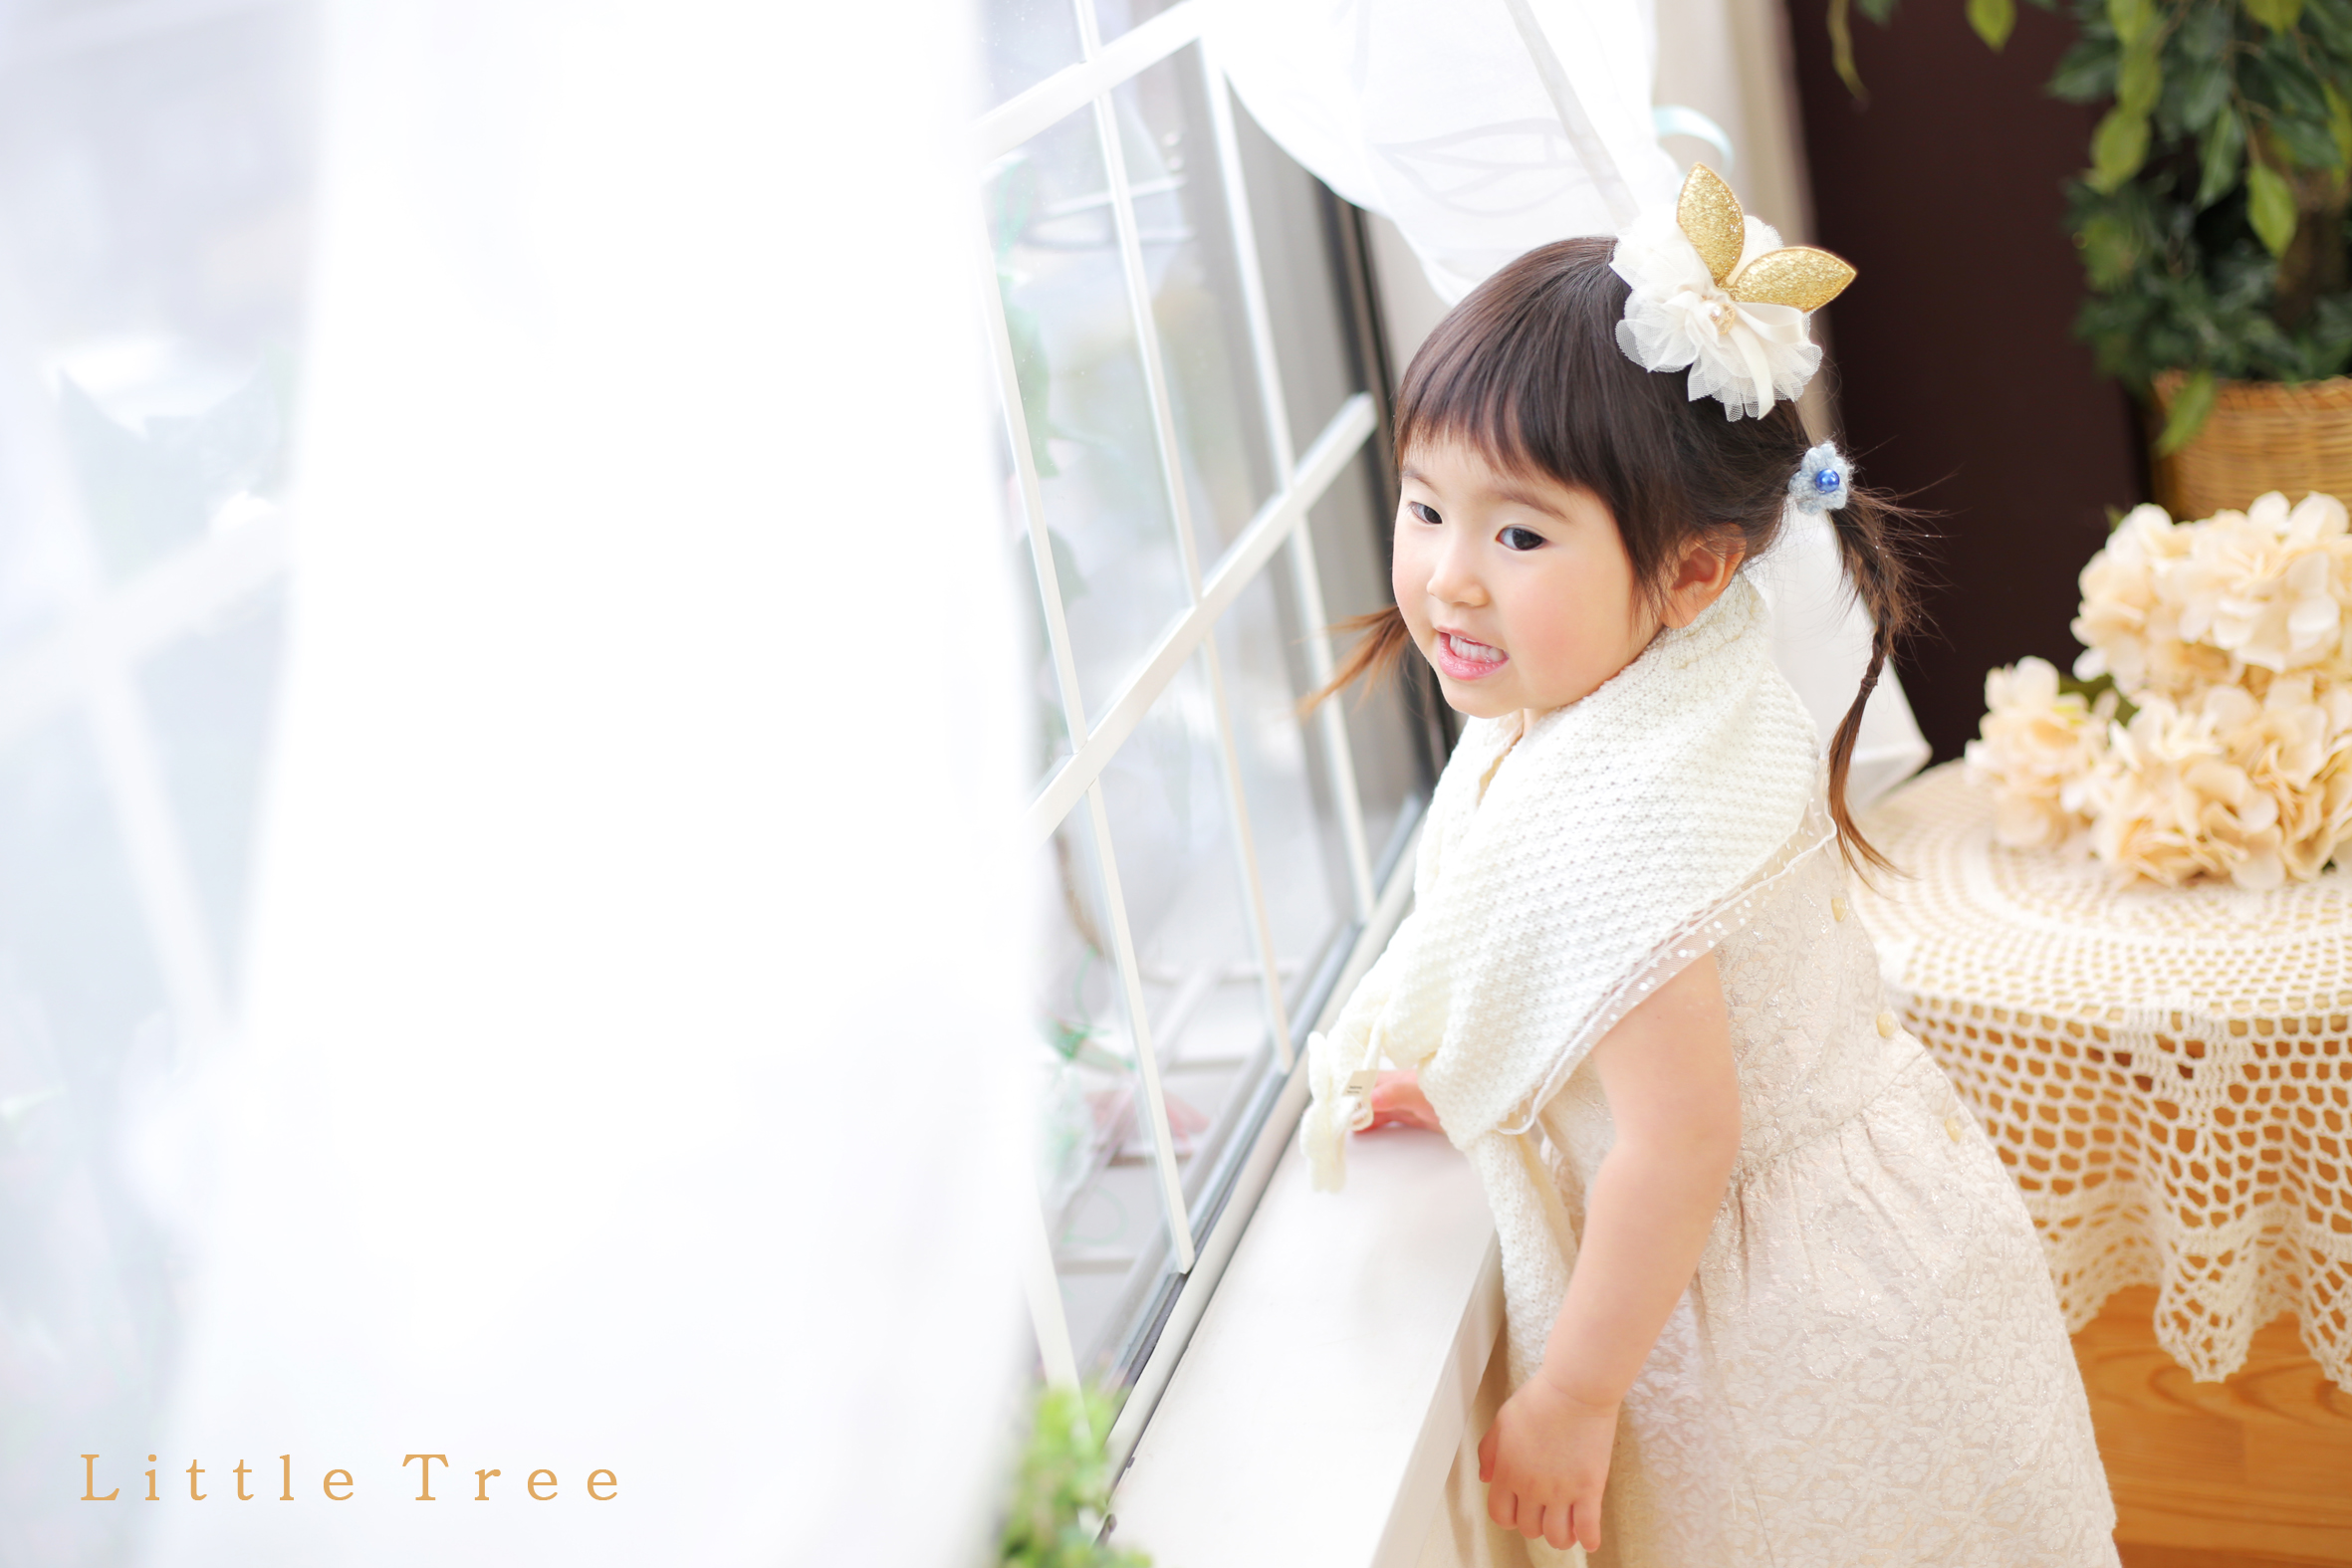 littletree junior54.jpg